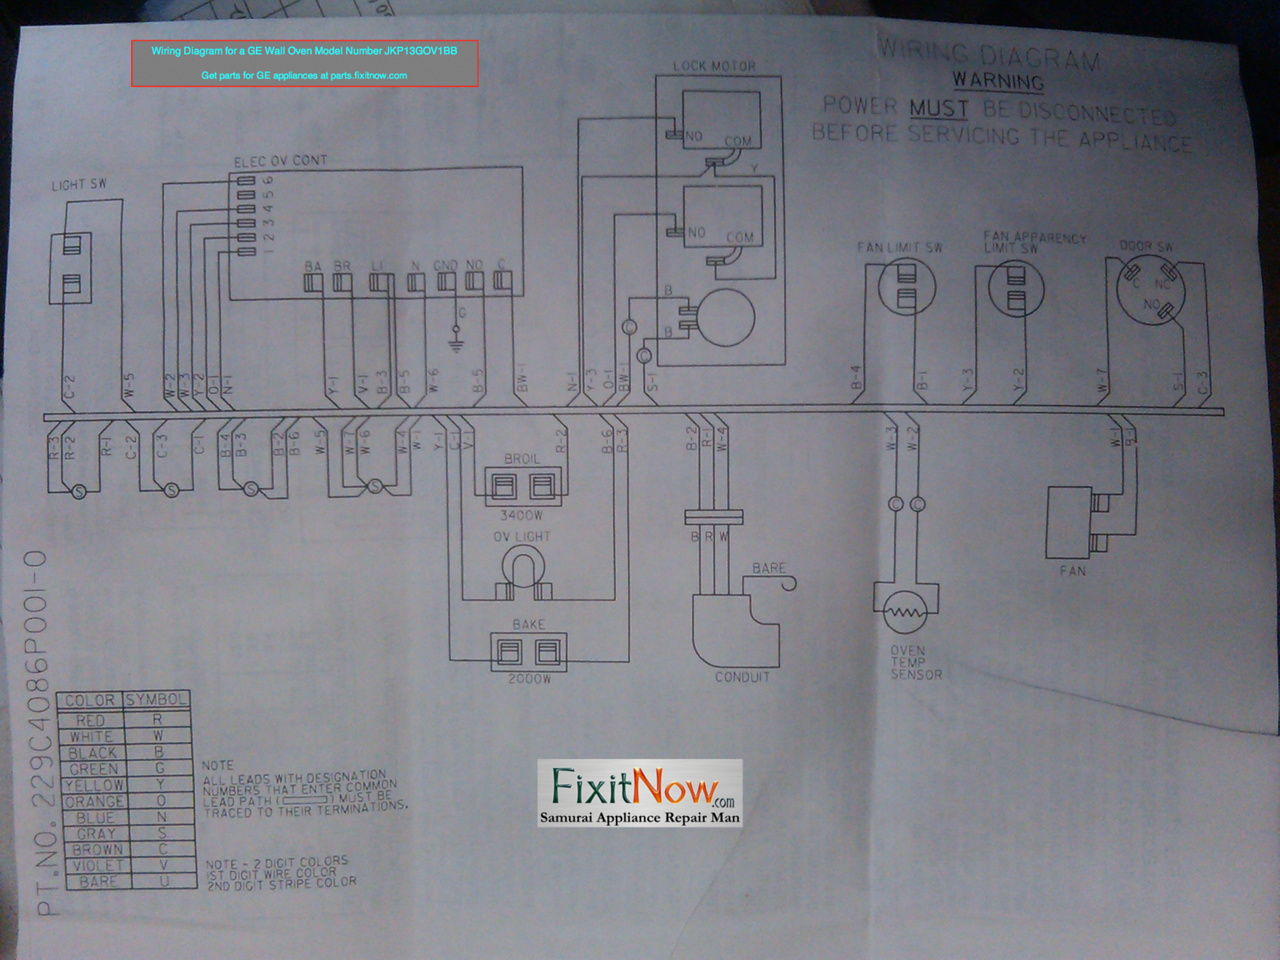 wiring diagram for a ge wall oven model number jkp13gov1bb